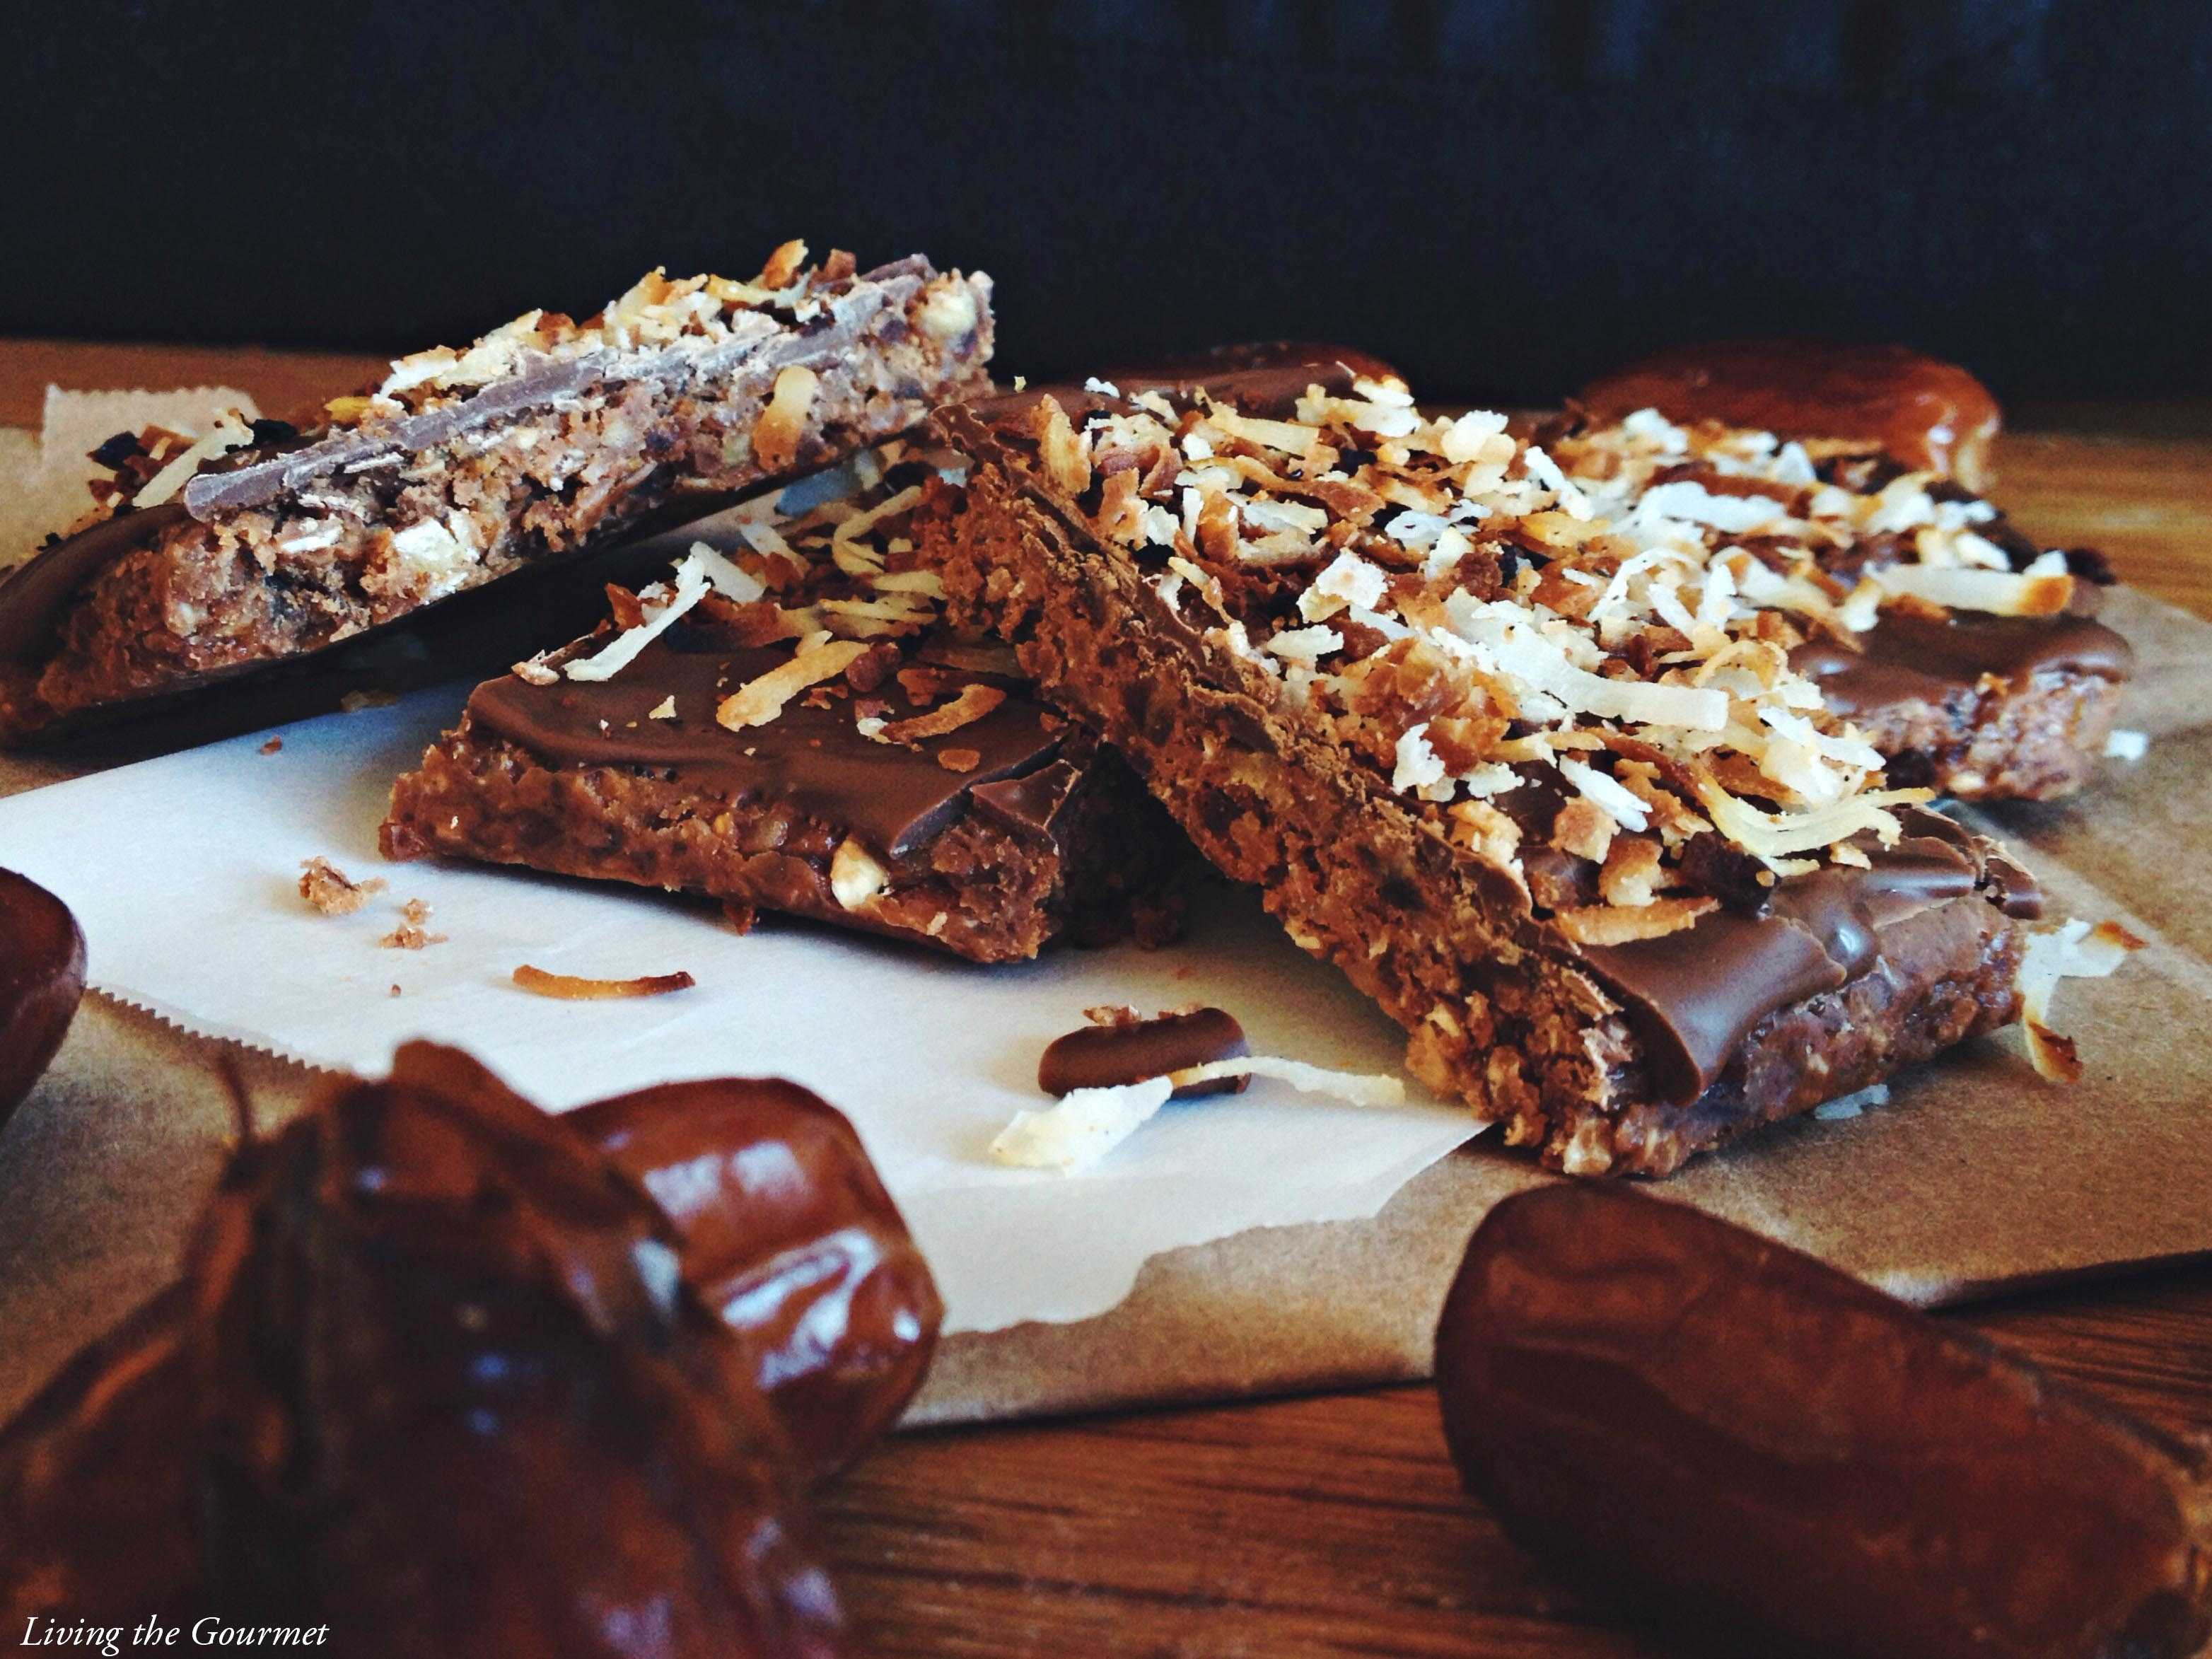 Living the Gourmet: Cocoa Protein Bars